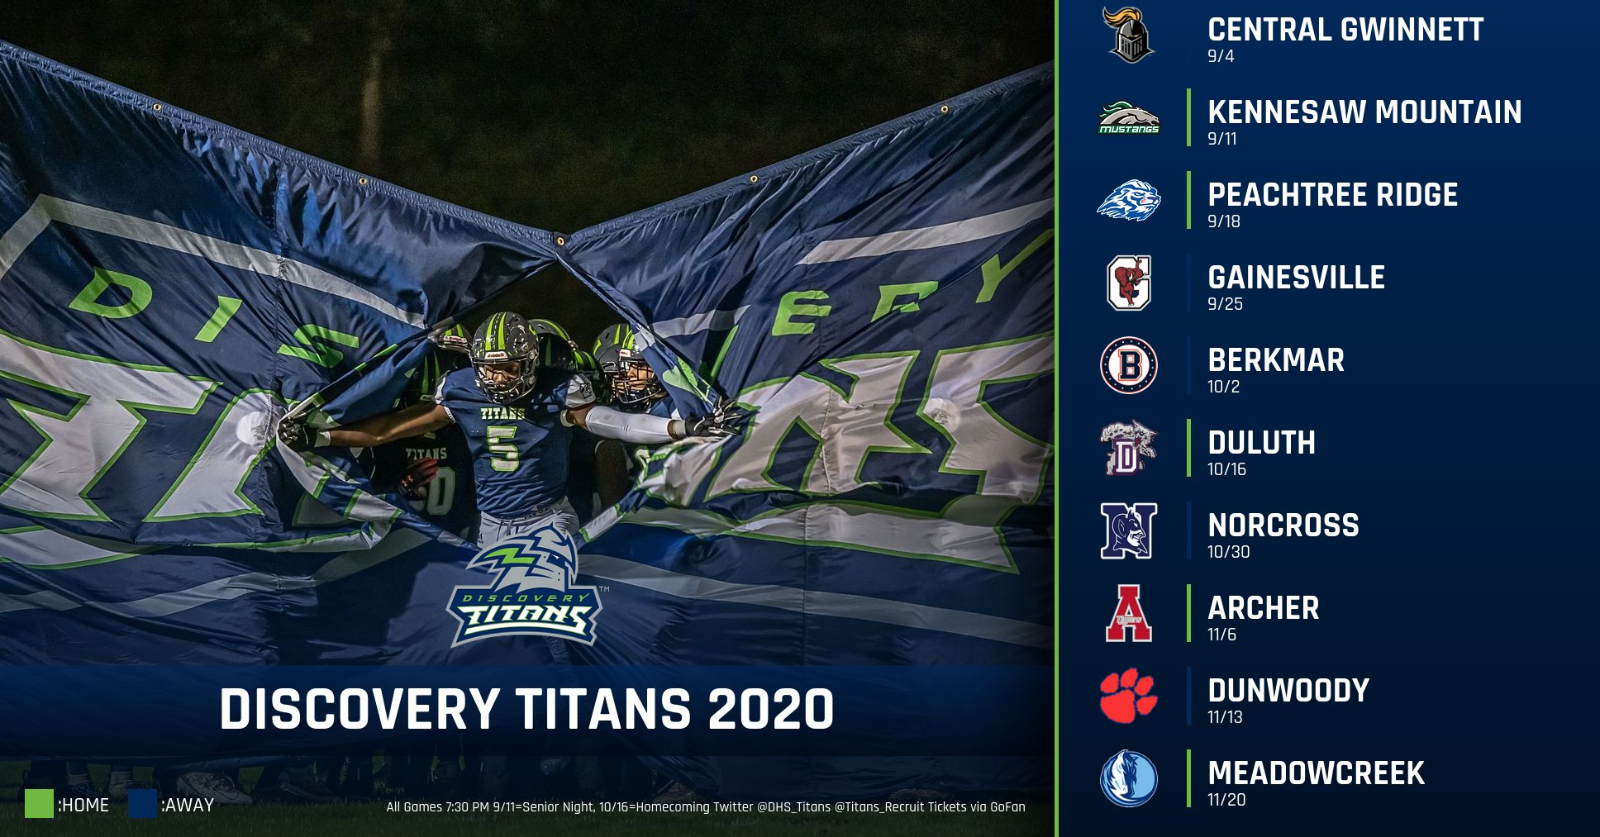 Discovery Titans Football Preview, Schedule and Roster